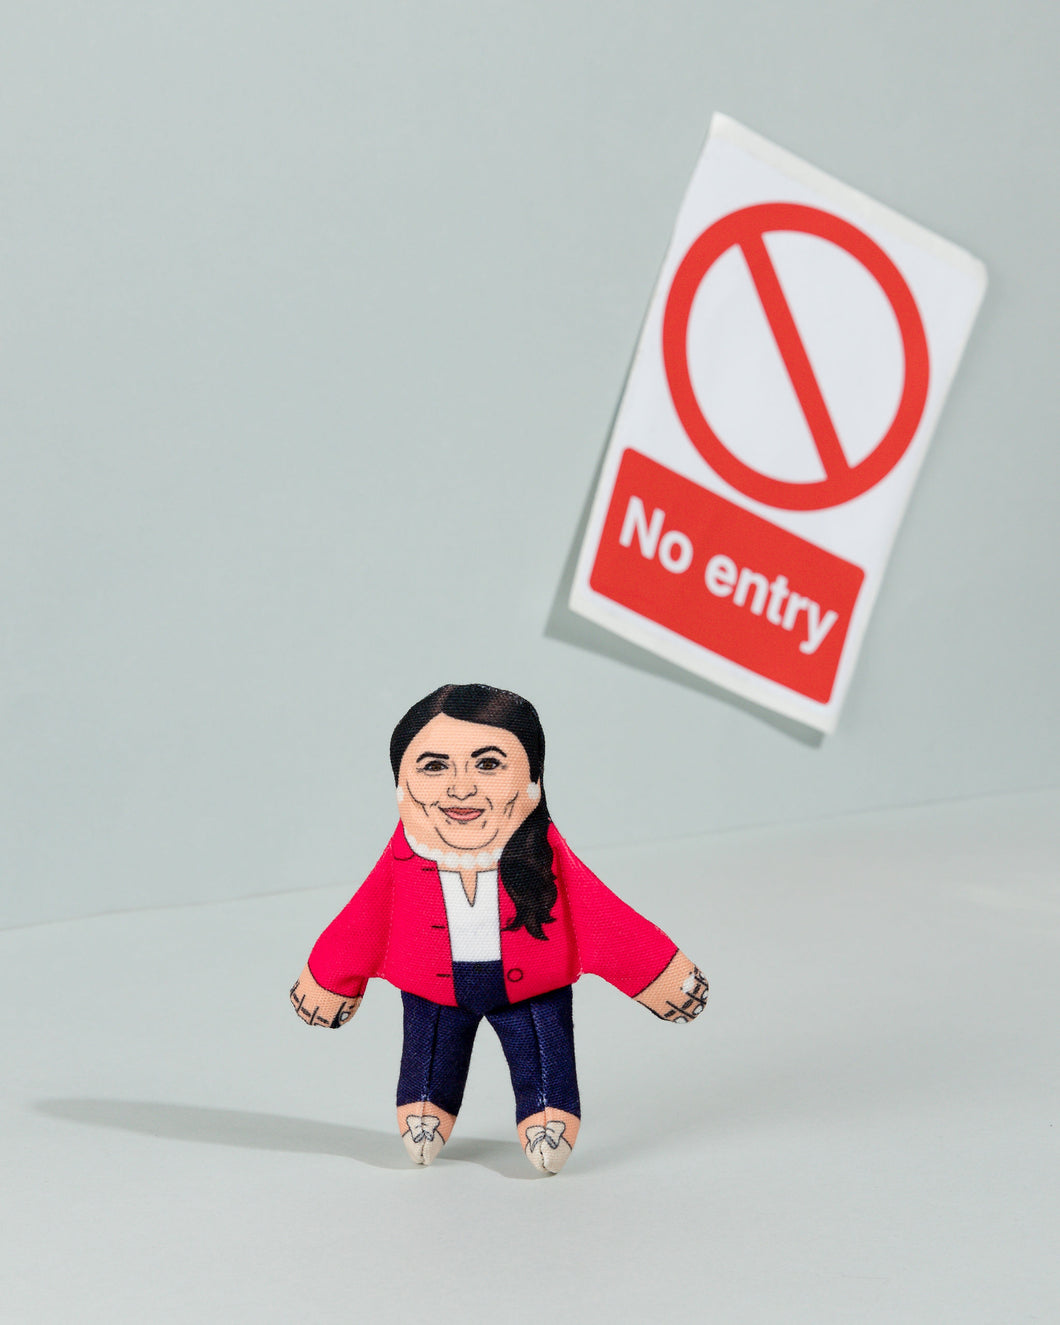 Priti Patel cat toy with no entry sign